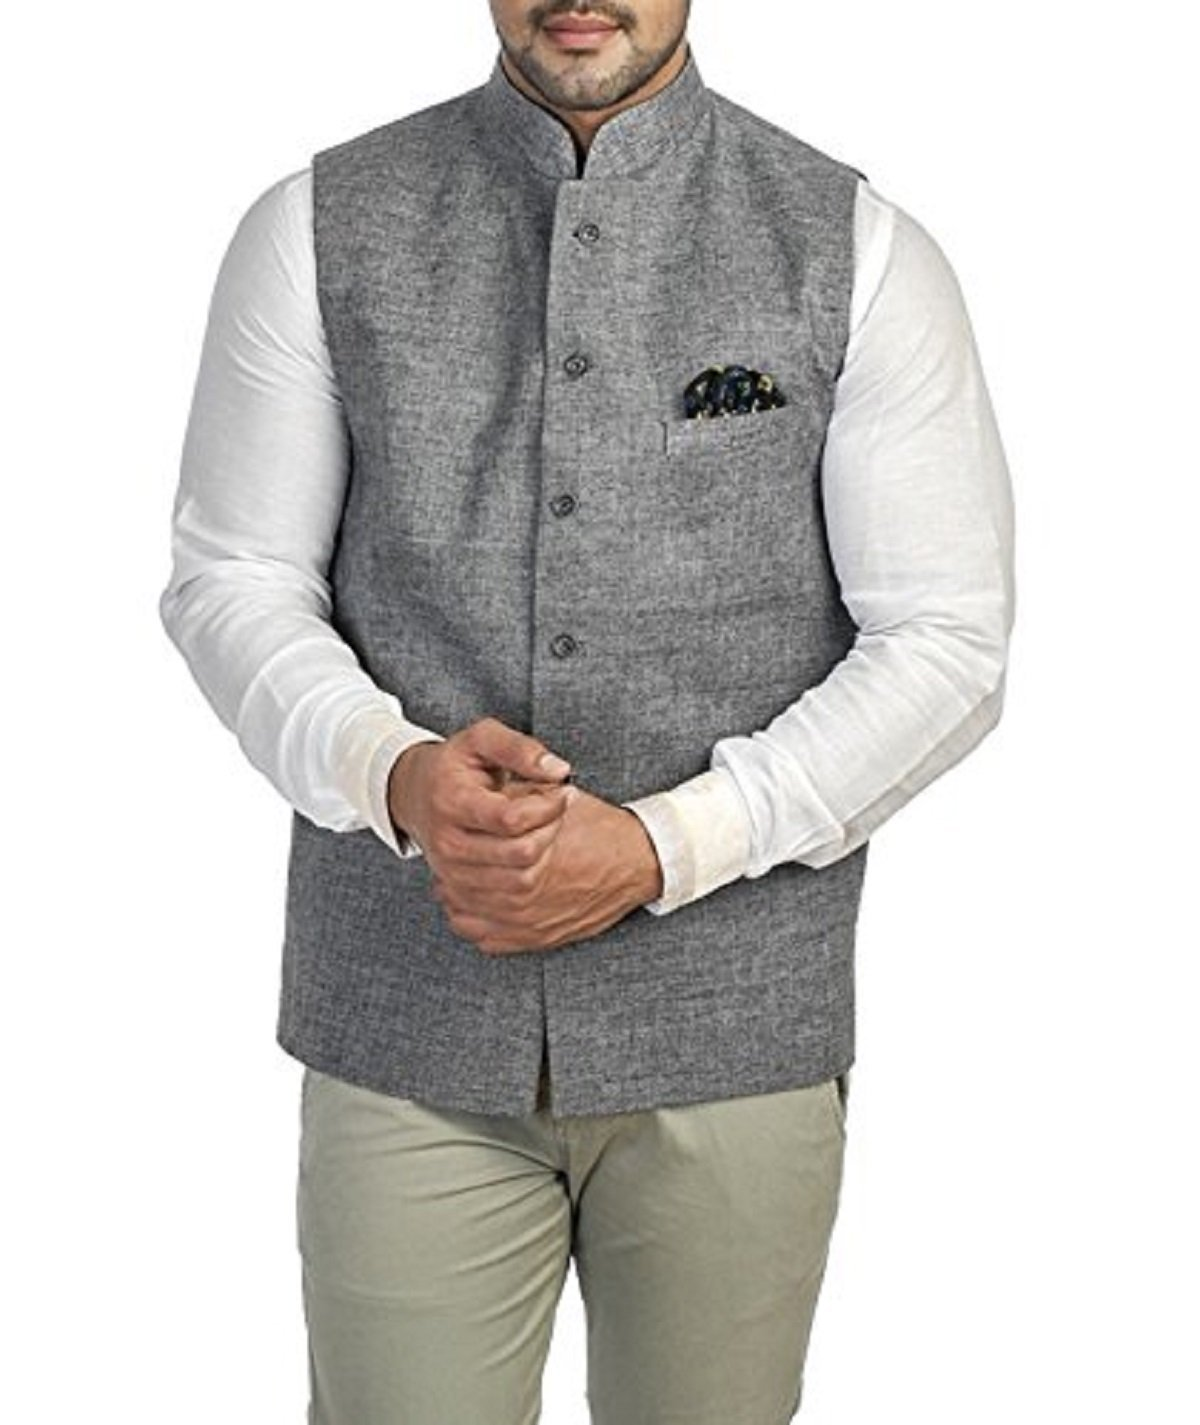 Royal Kurta Men's Cotton Blend Nehru Jacket Large Grey by Royal Kurta